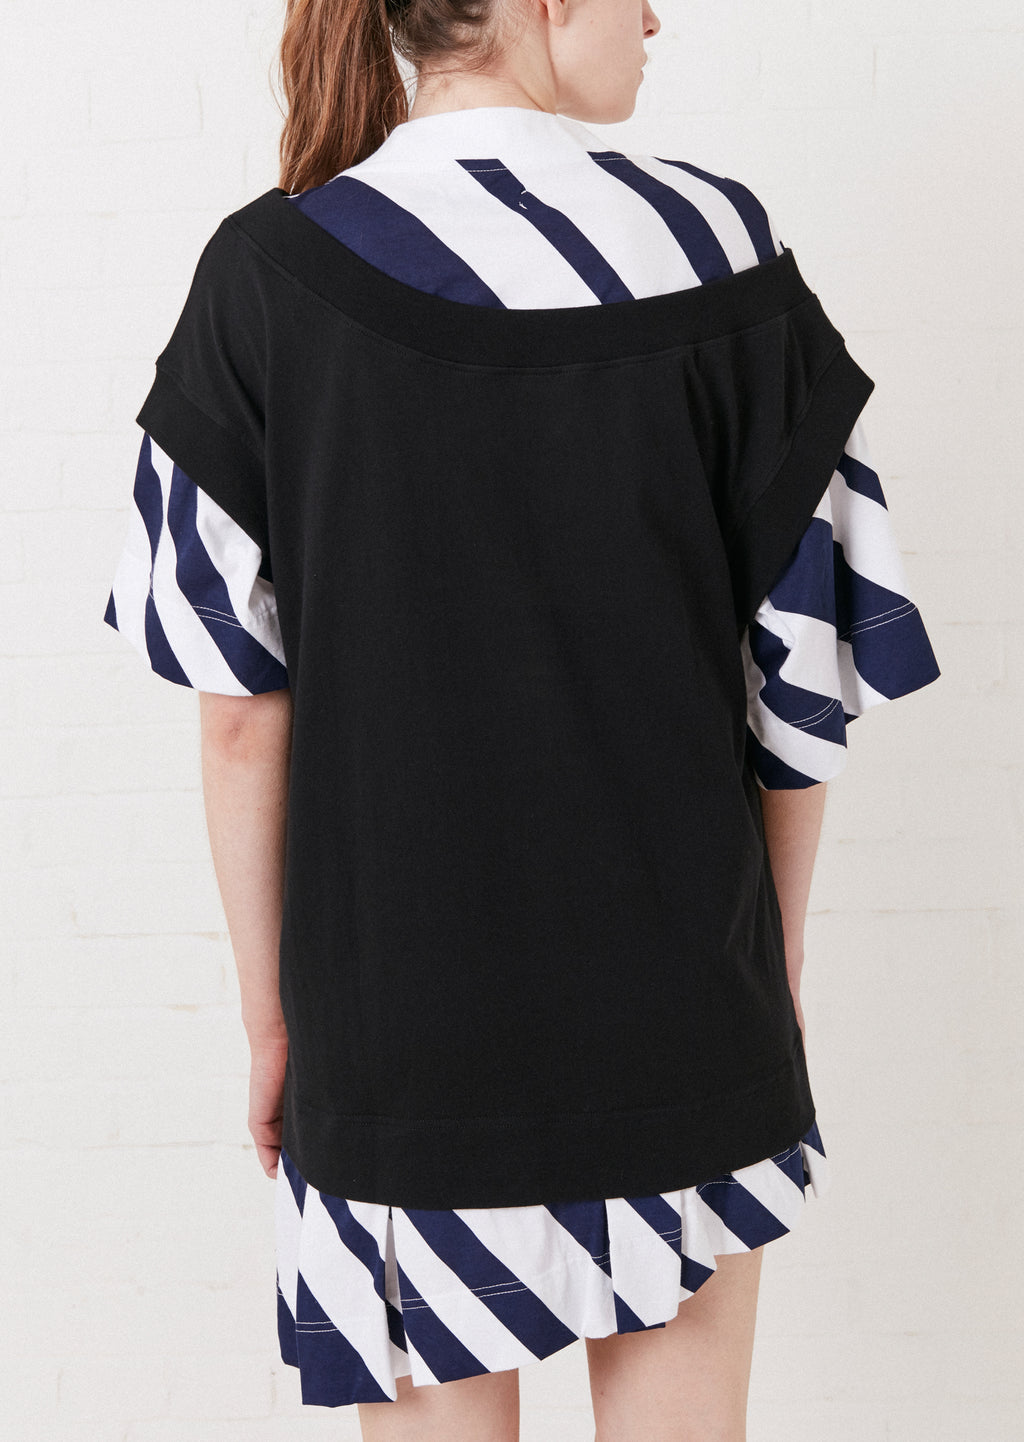 93 Layered Oversized T-Shirt Dress By House of Holland